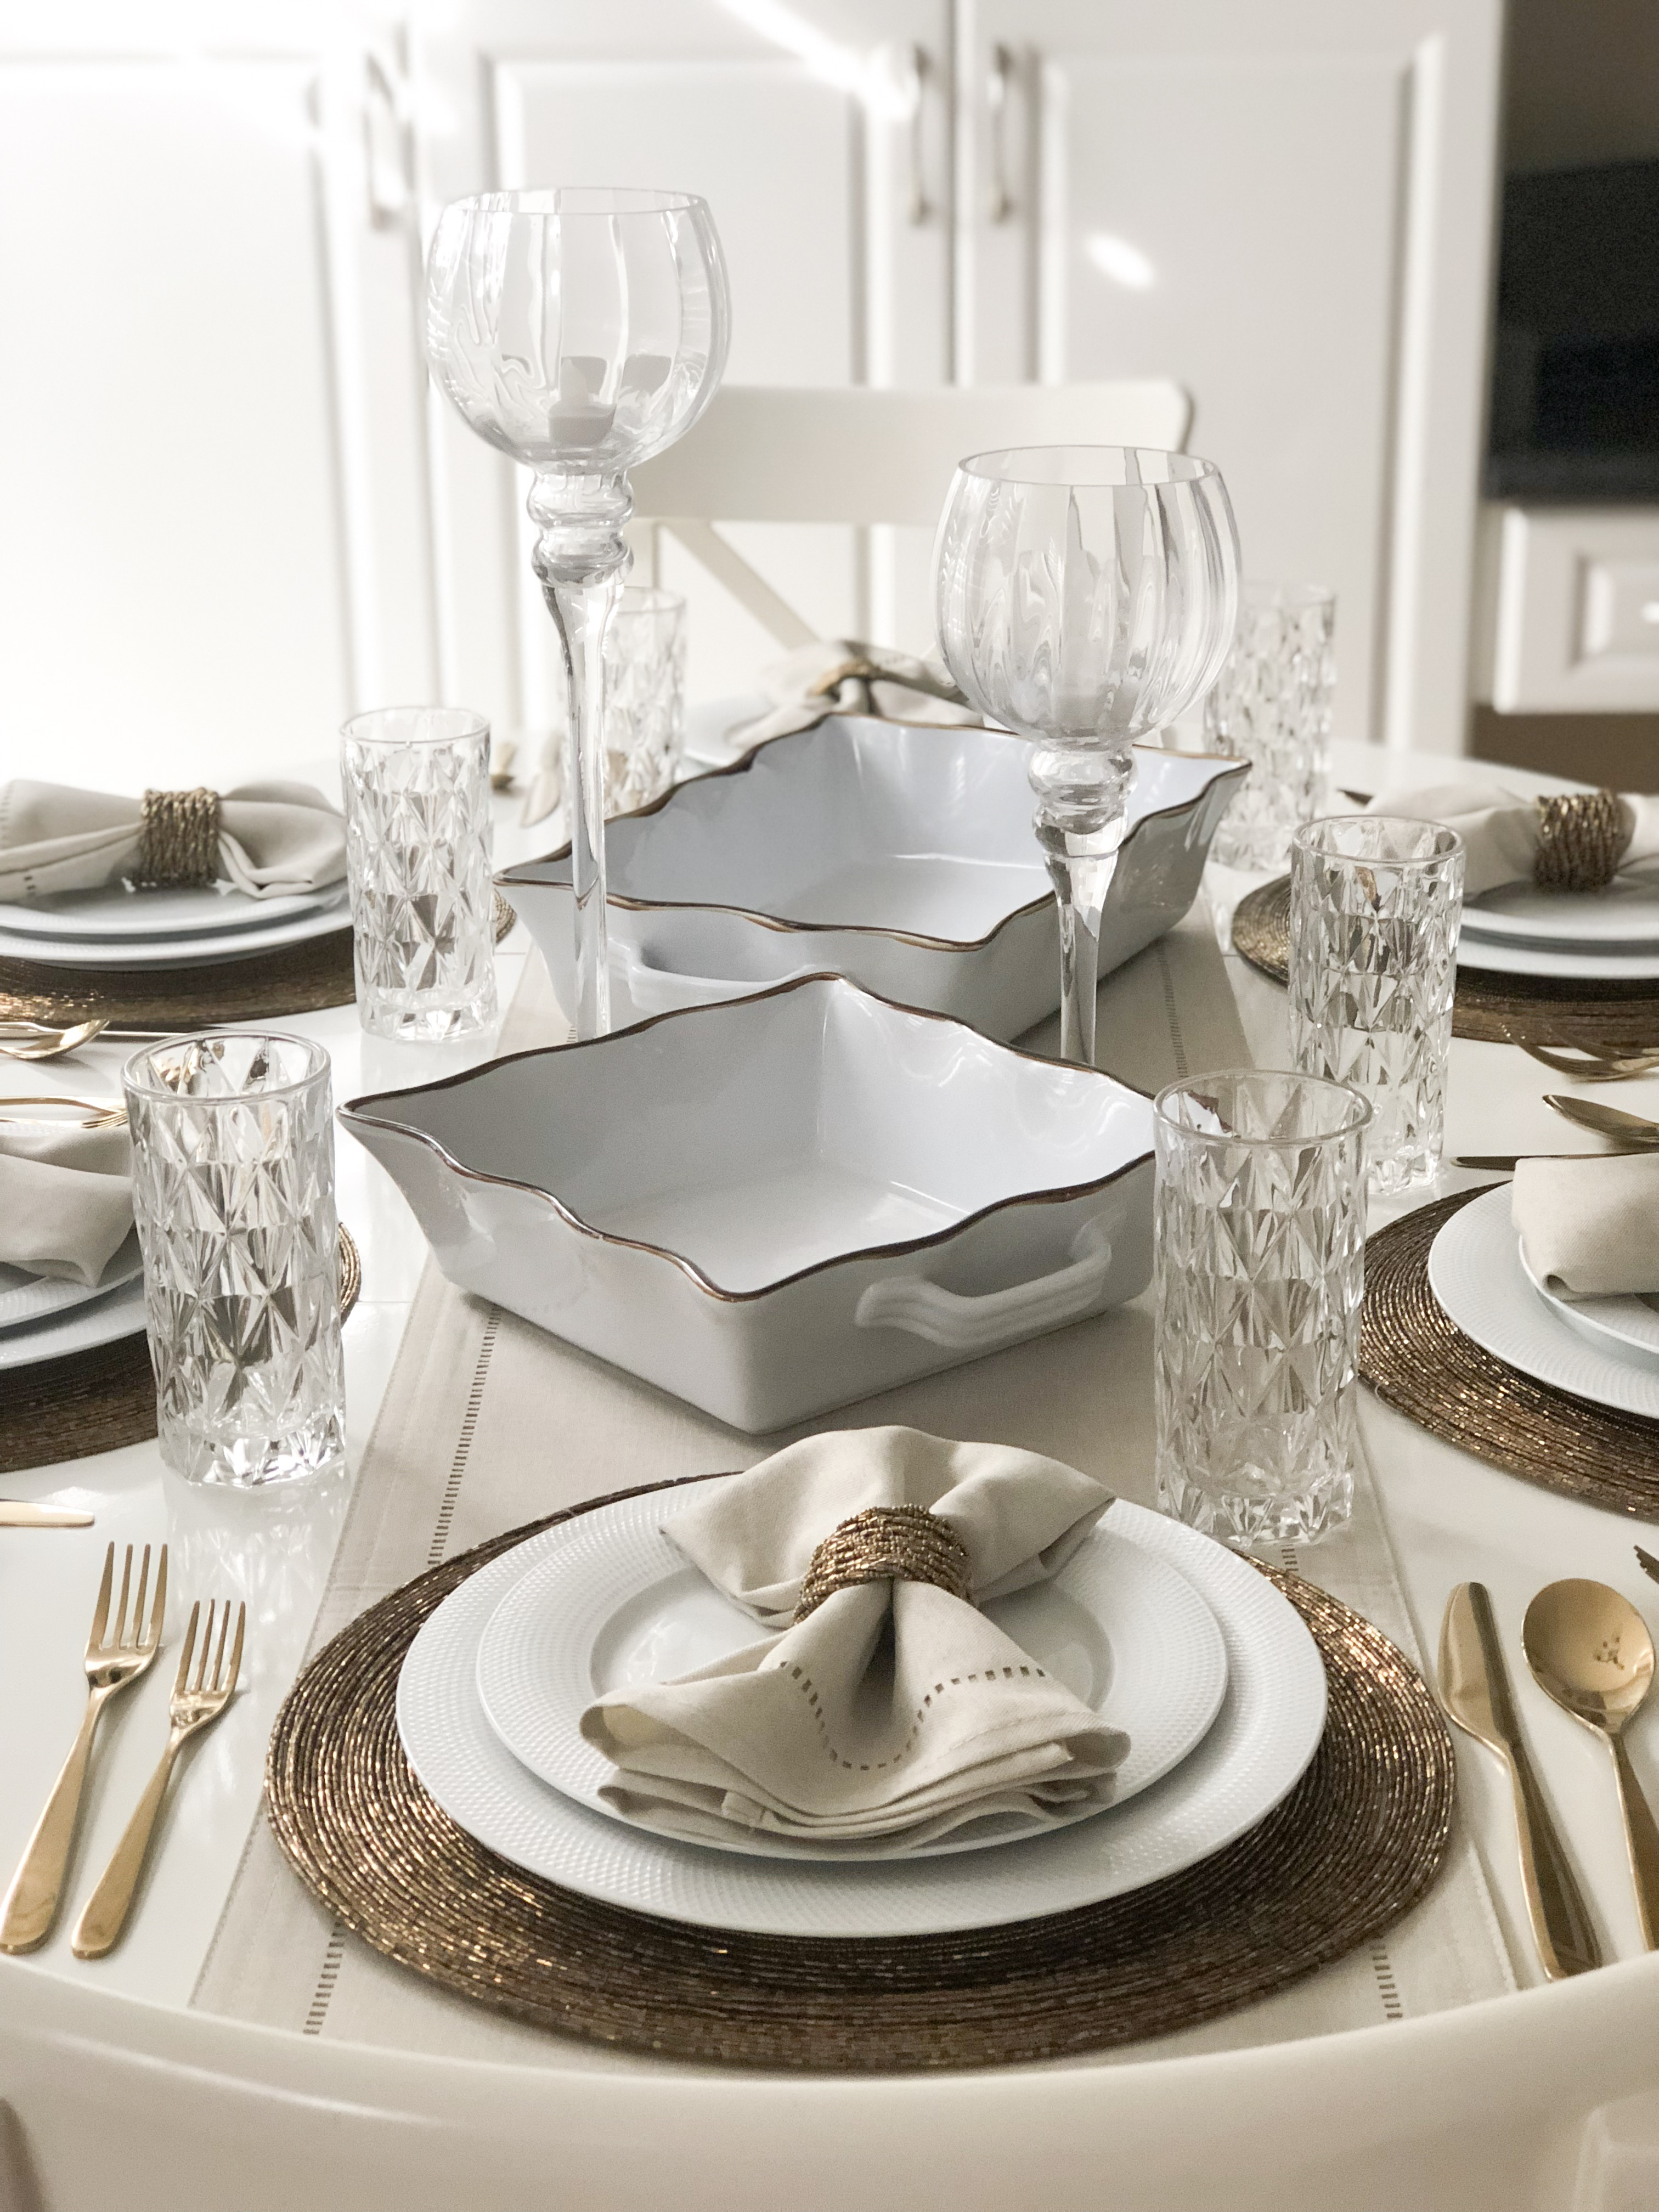 Table Setting - Kitchen Stuff Place, Livin' Life with Style